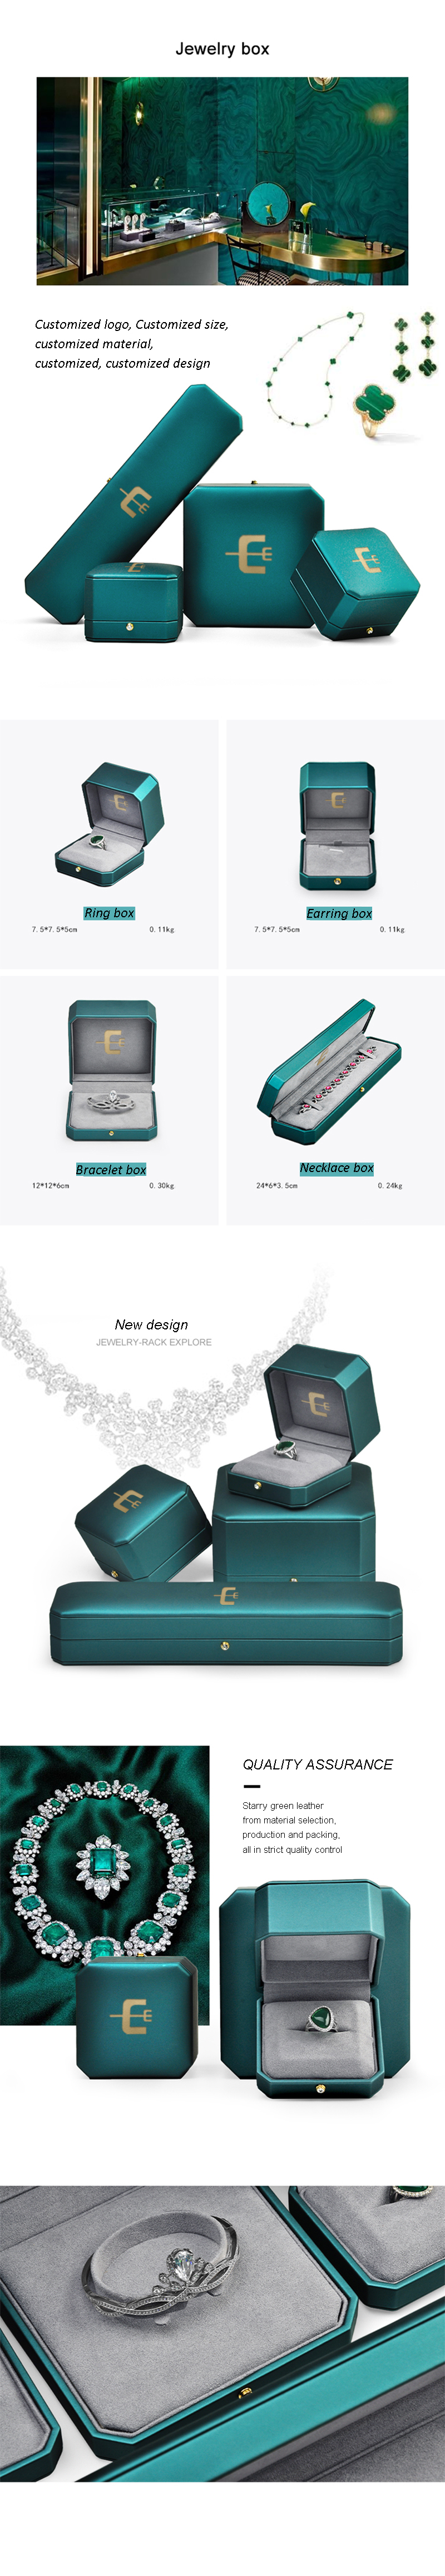 Jewelry packaging supplier